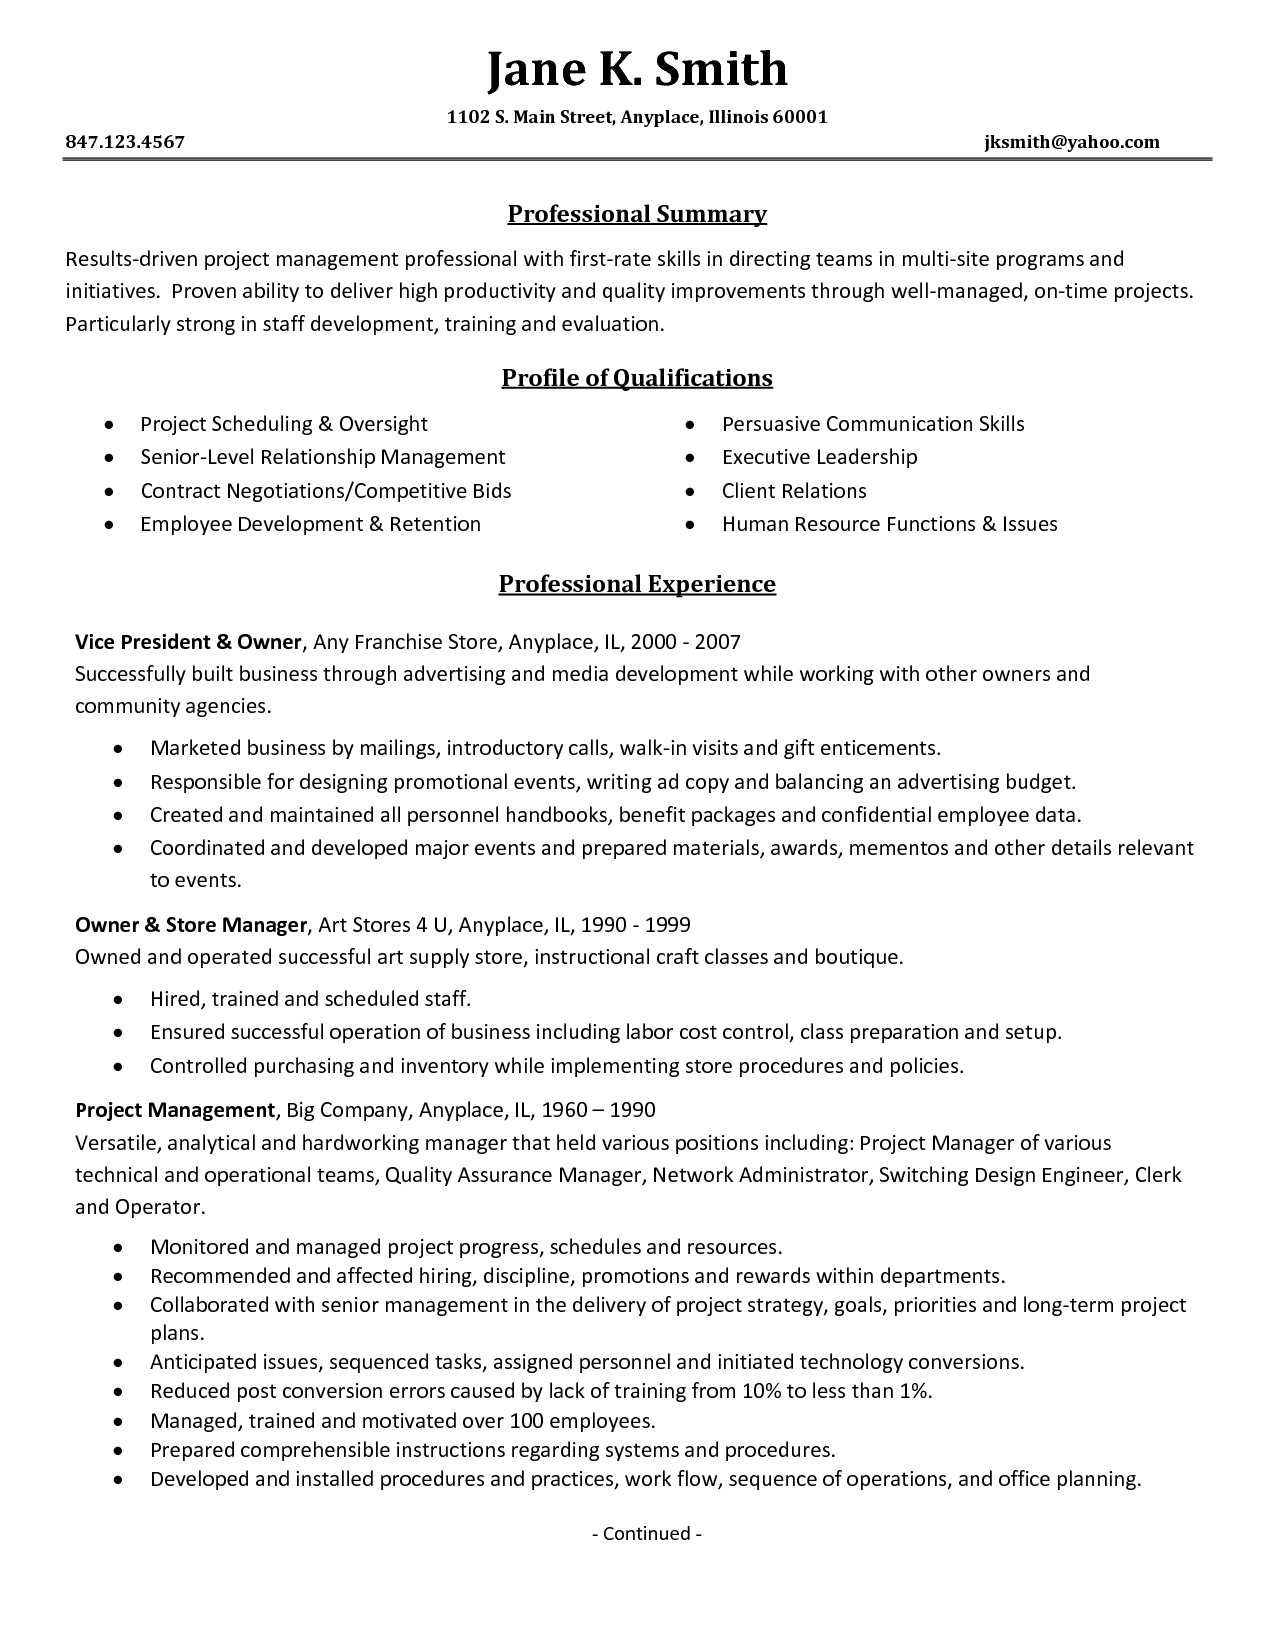 Project Management Resume Leadership Skills Resume Leadership Skills Resume Template…  Job